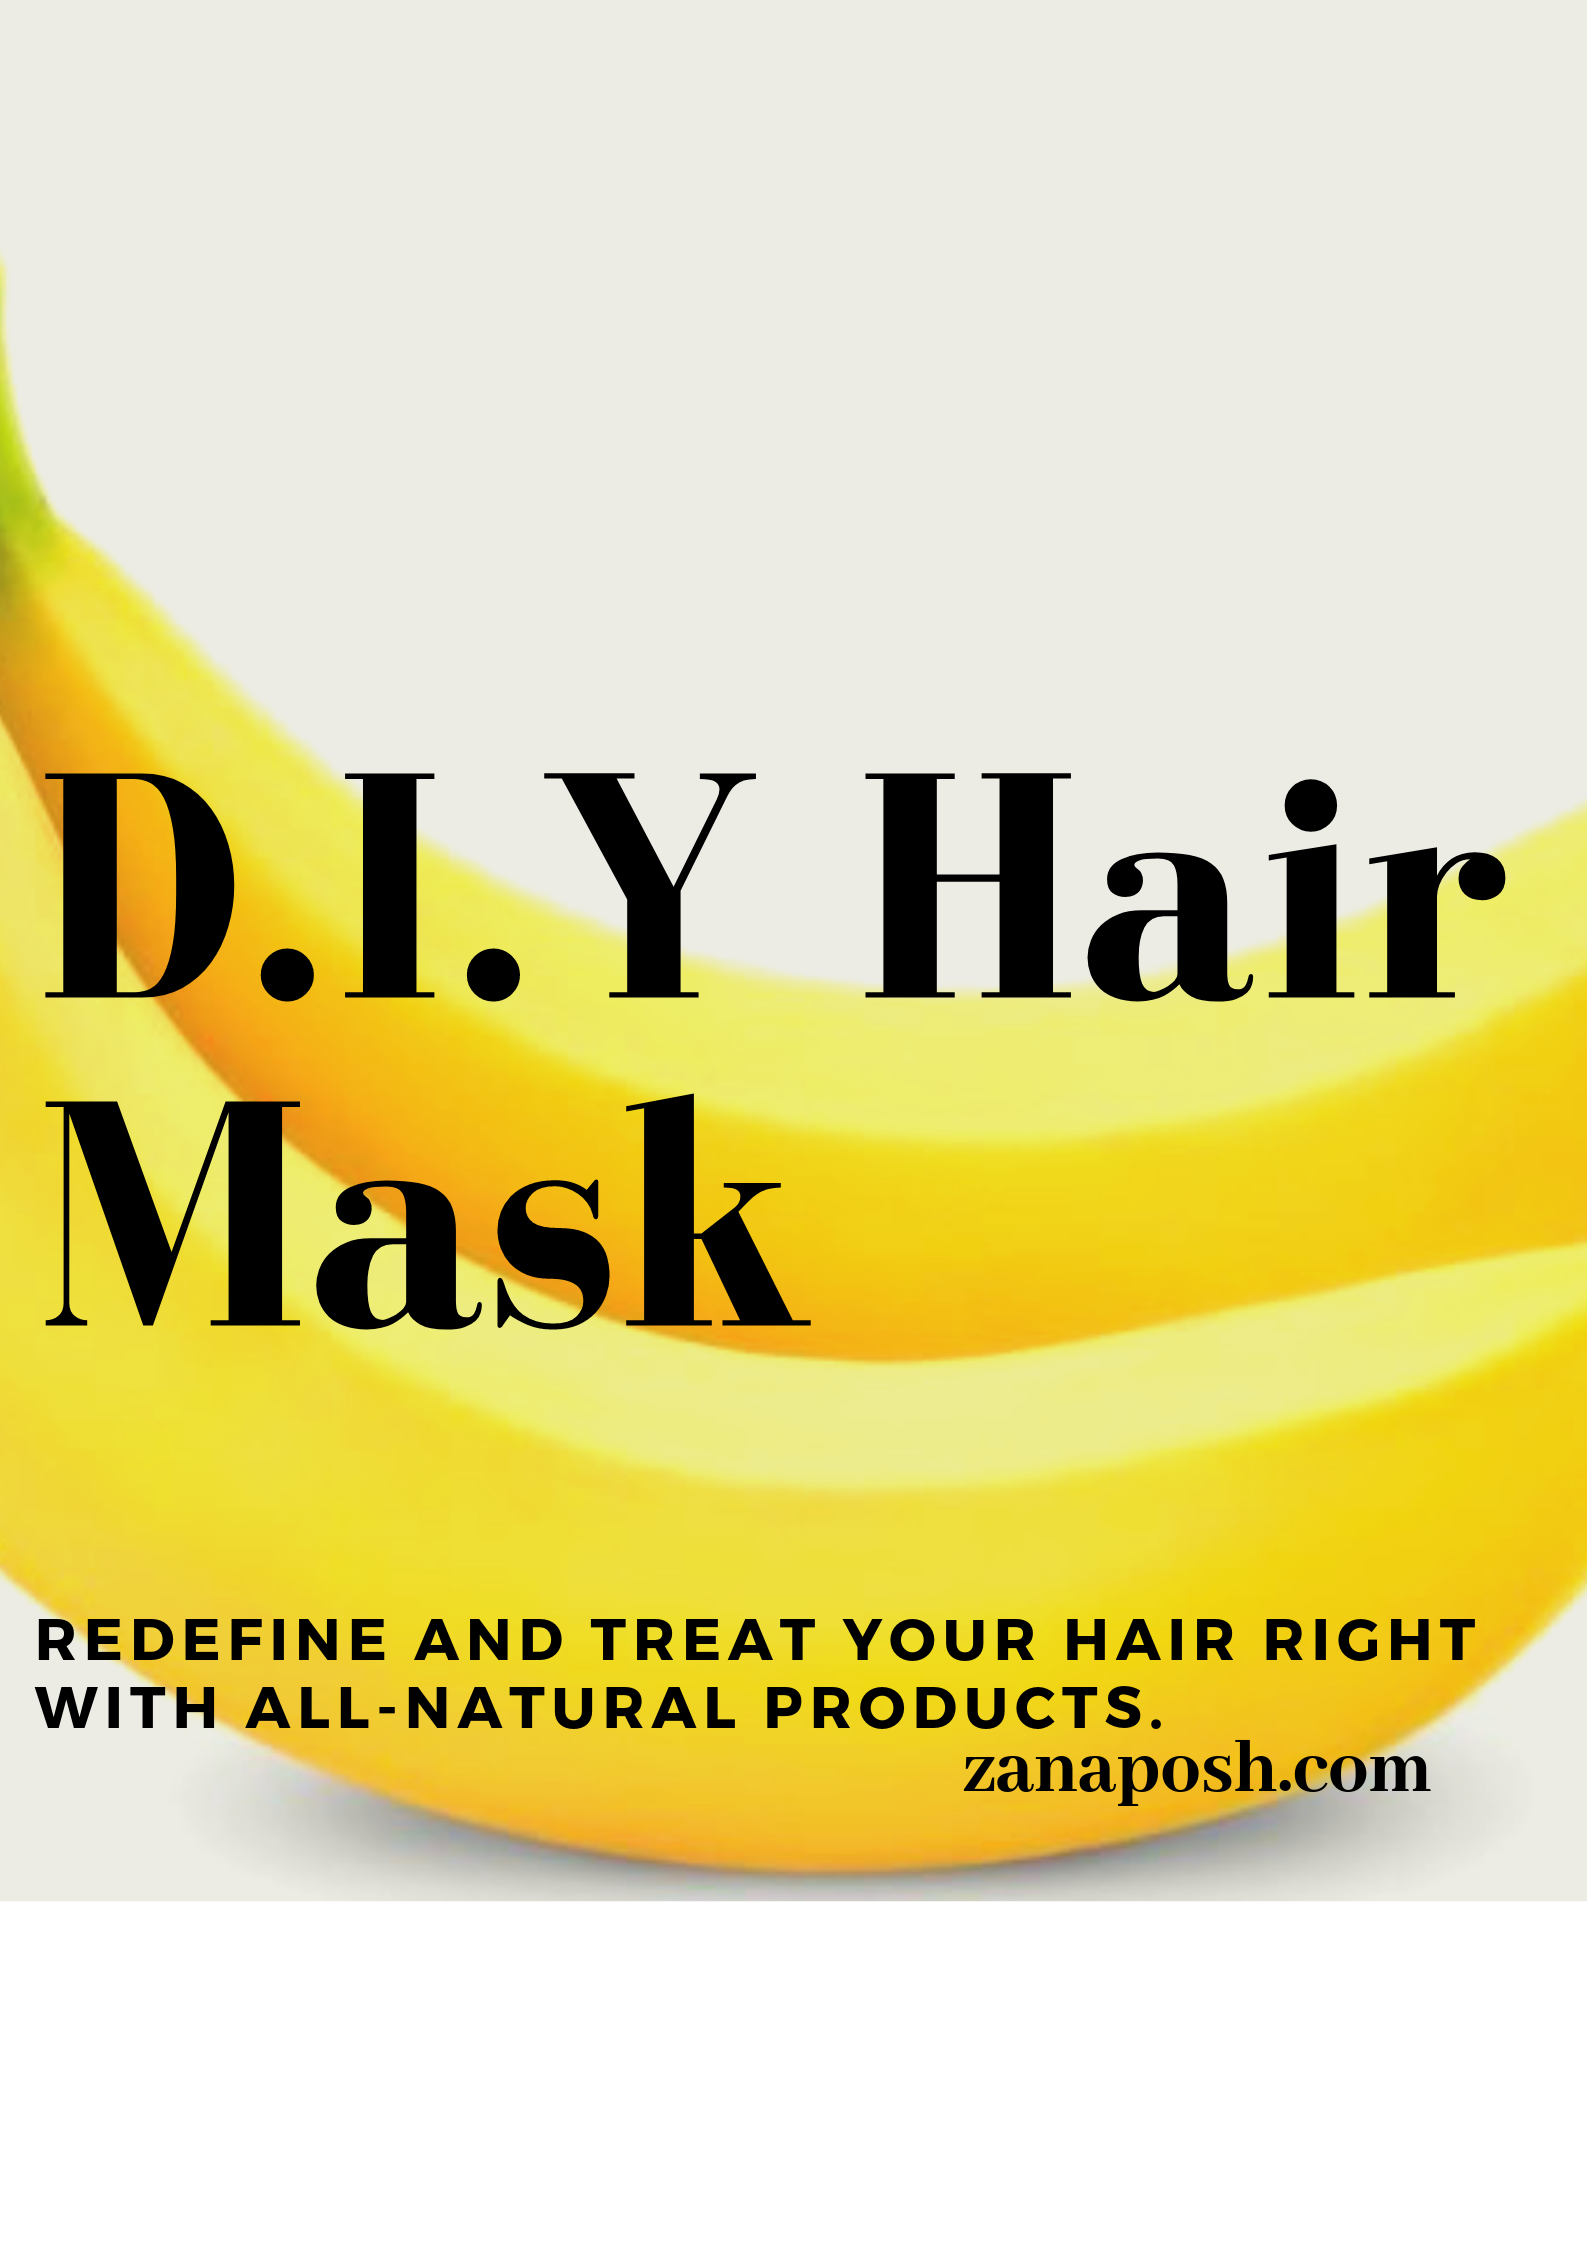 D.I.Y Hair Mask Routine.